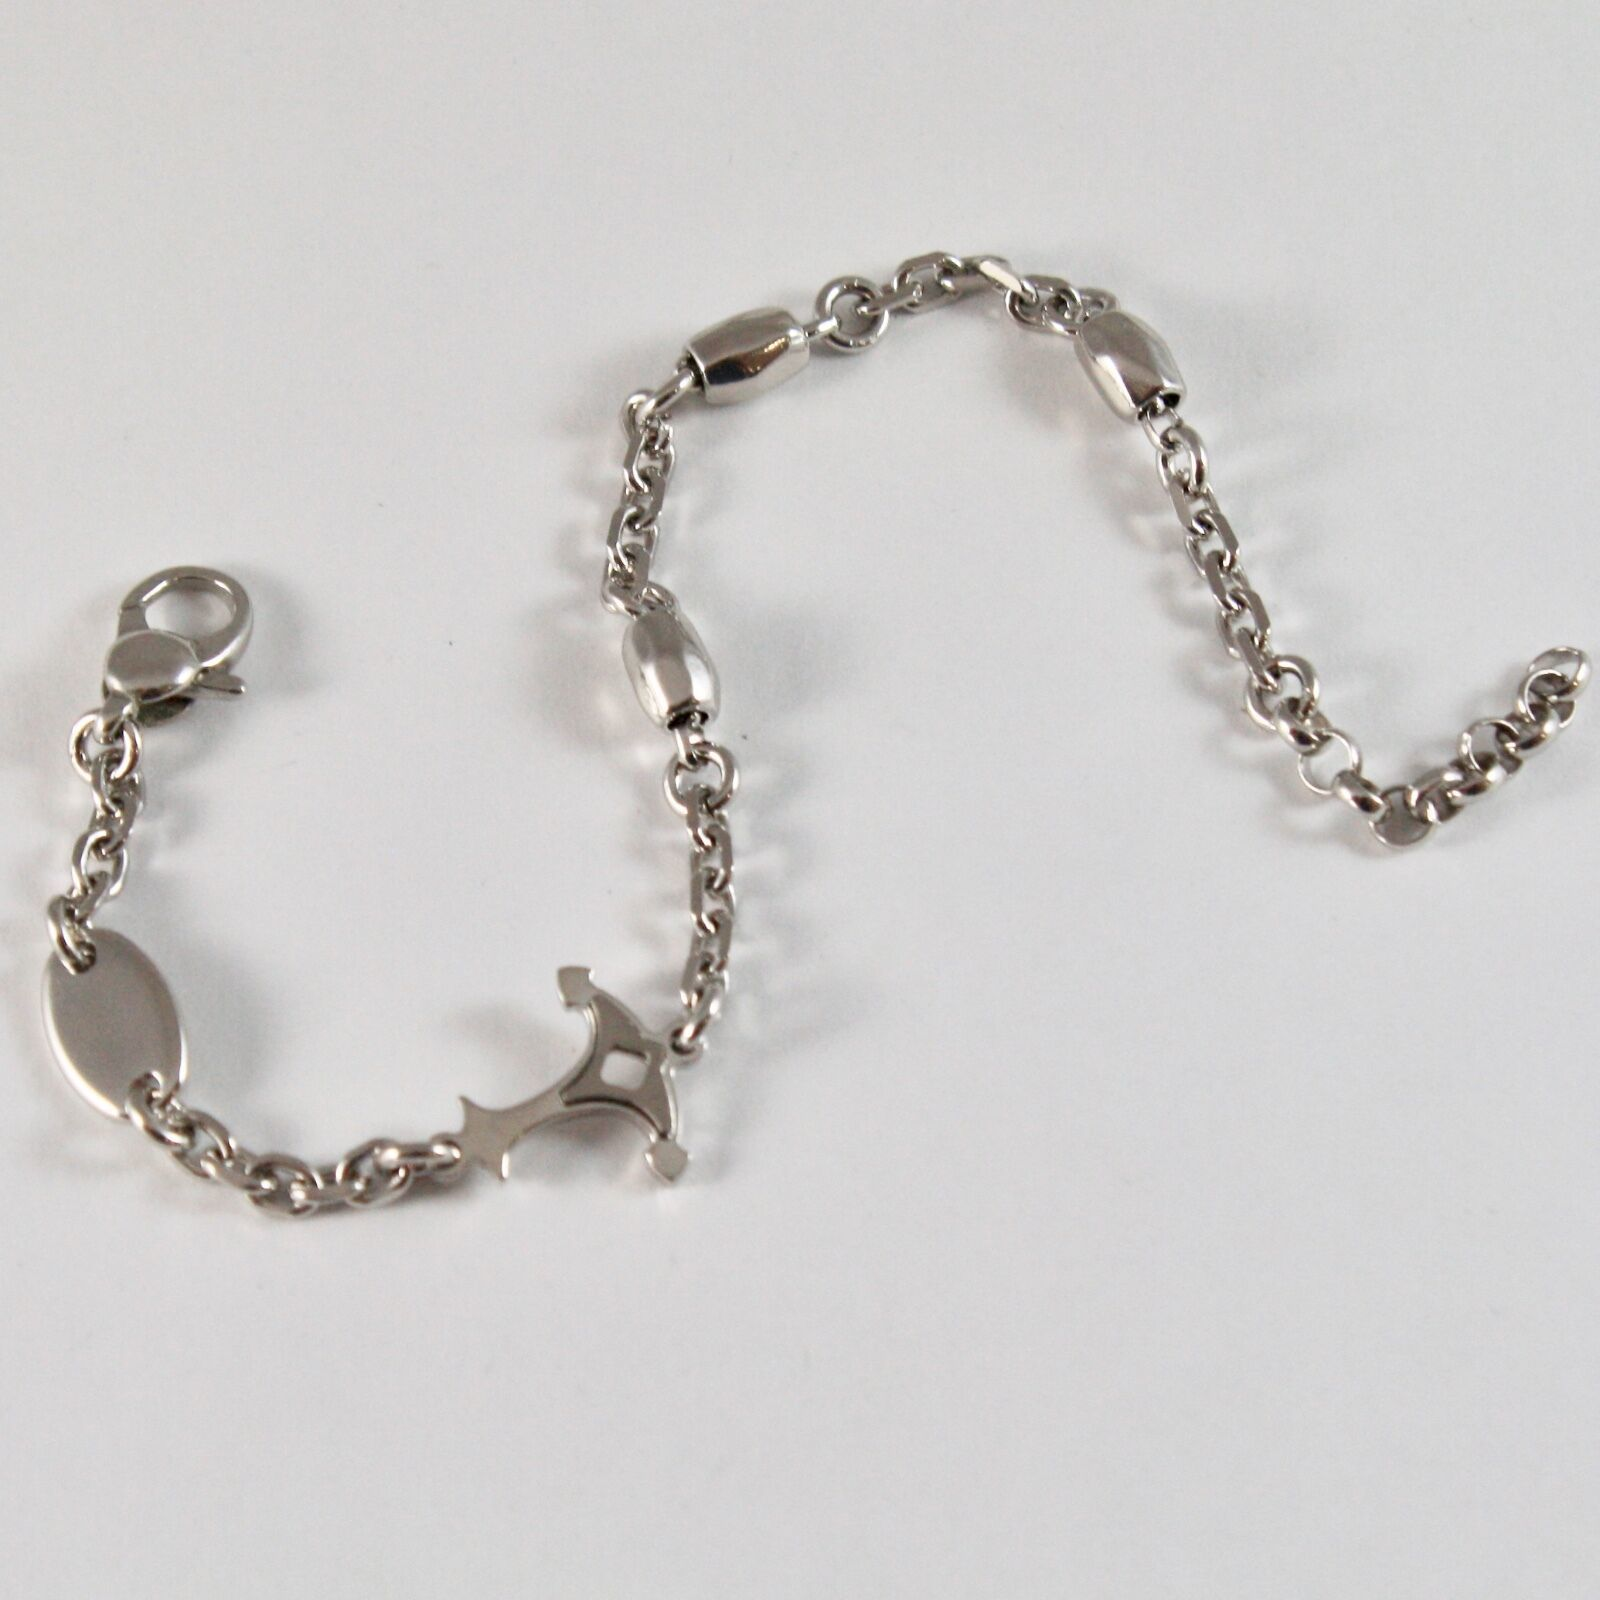 Silver 925 Bracelet Rhodium Adjustable with Anchor Shaped & Shiny Satin